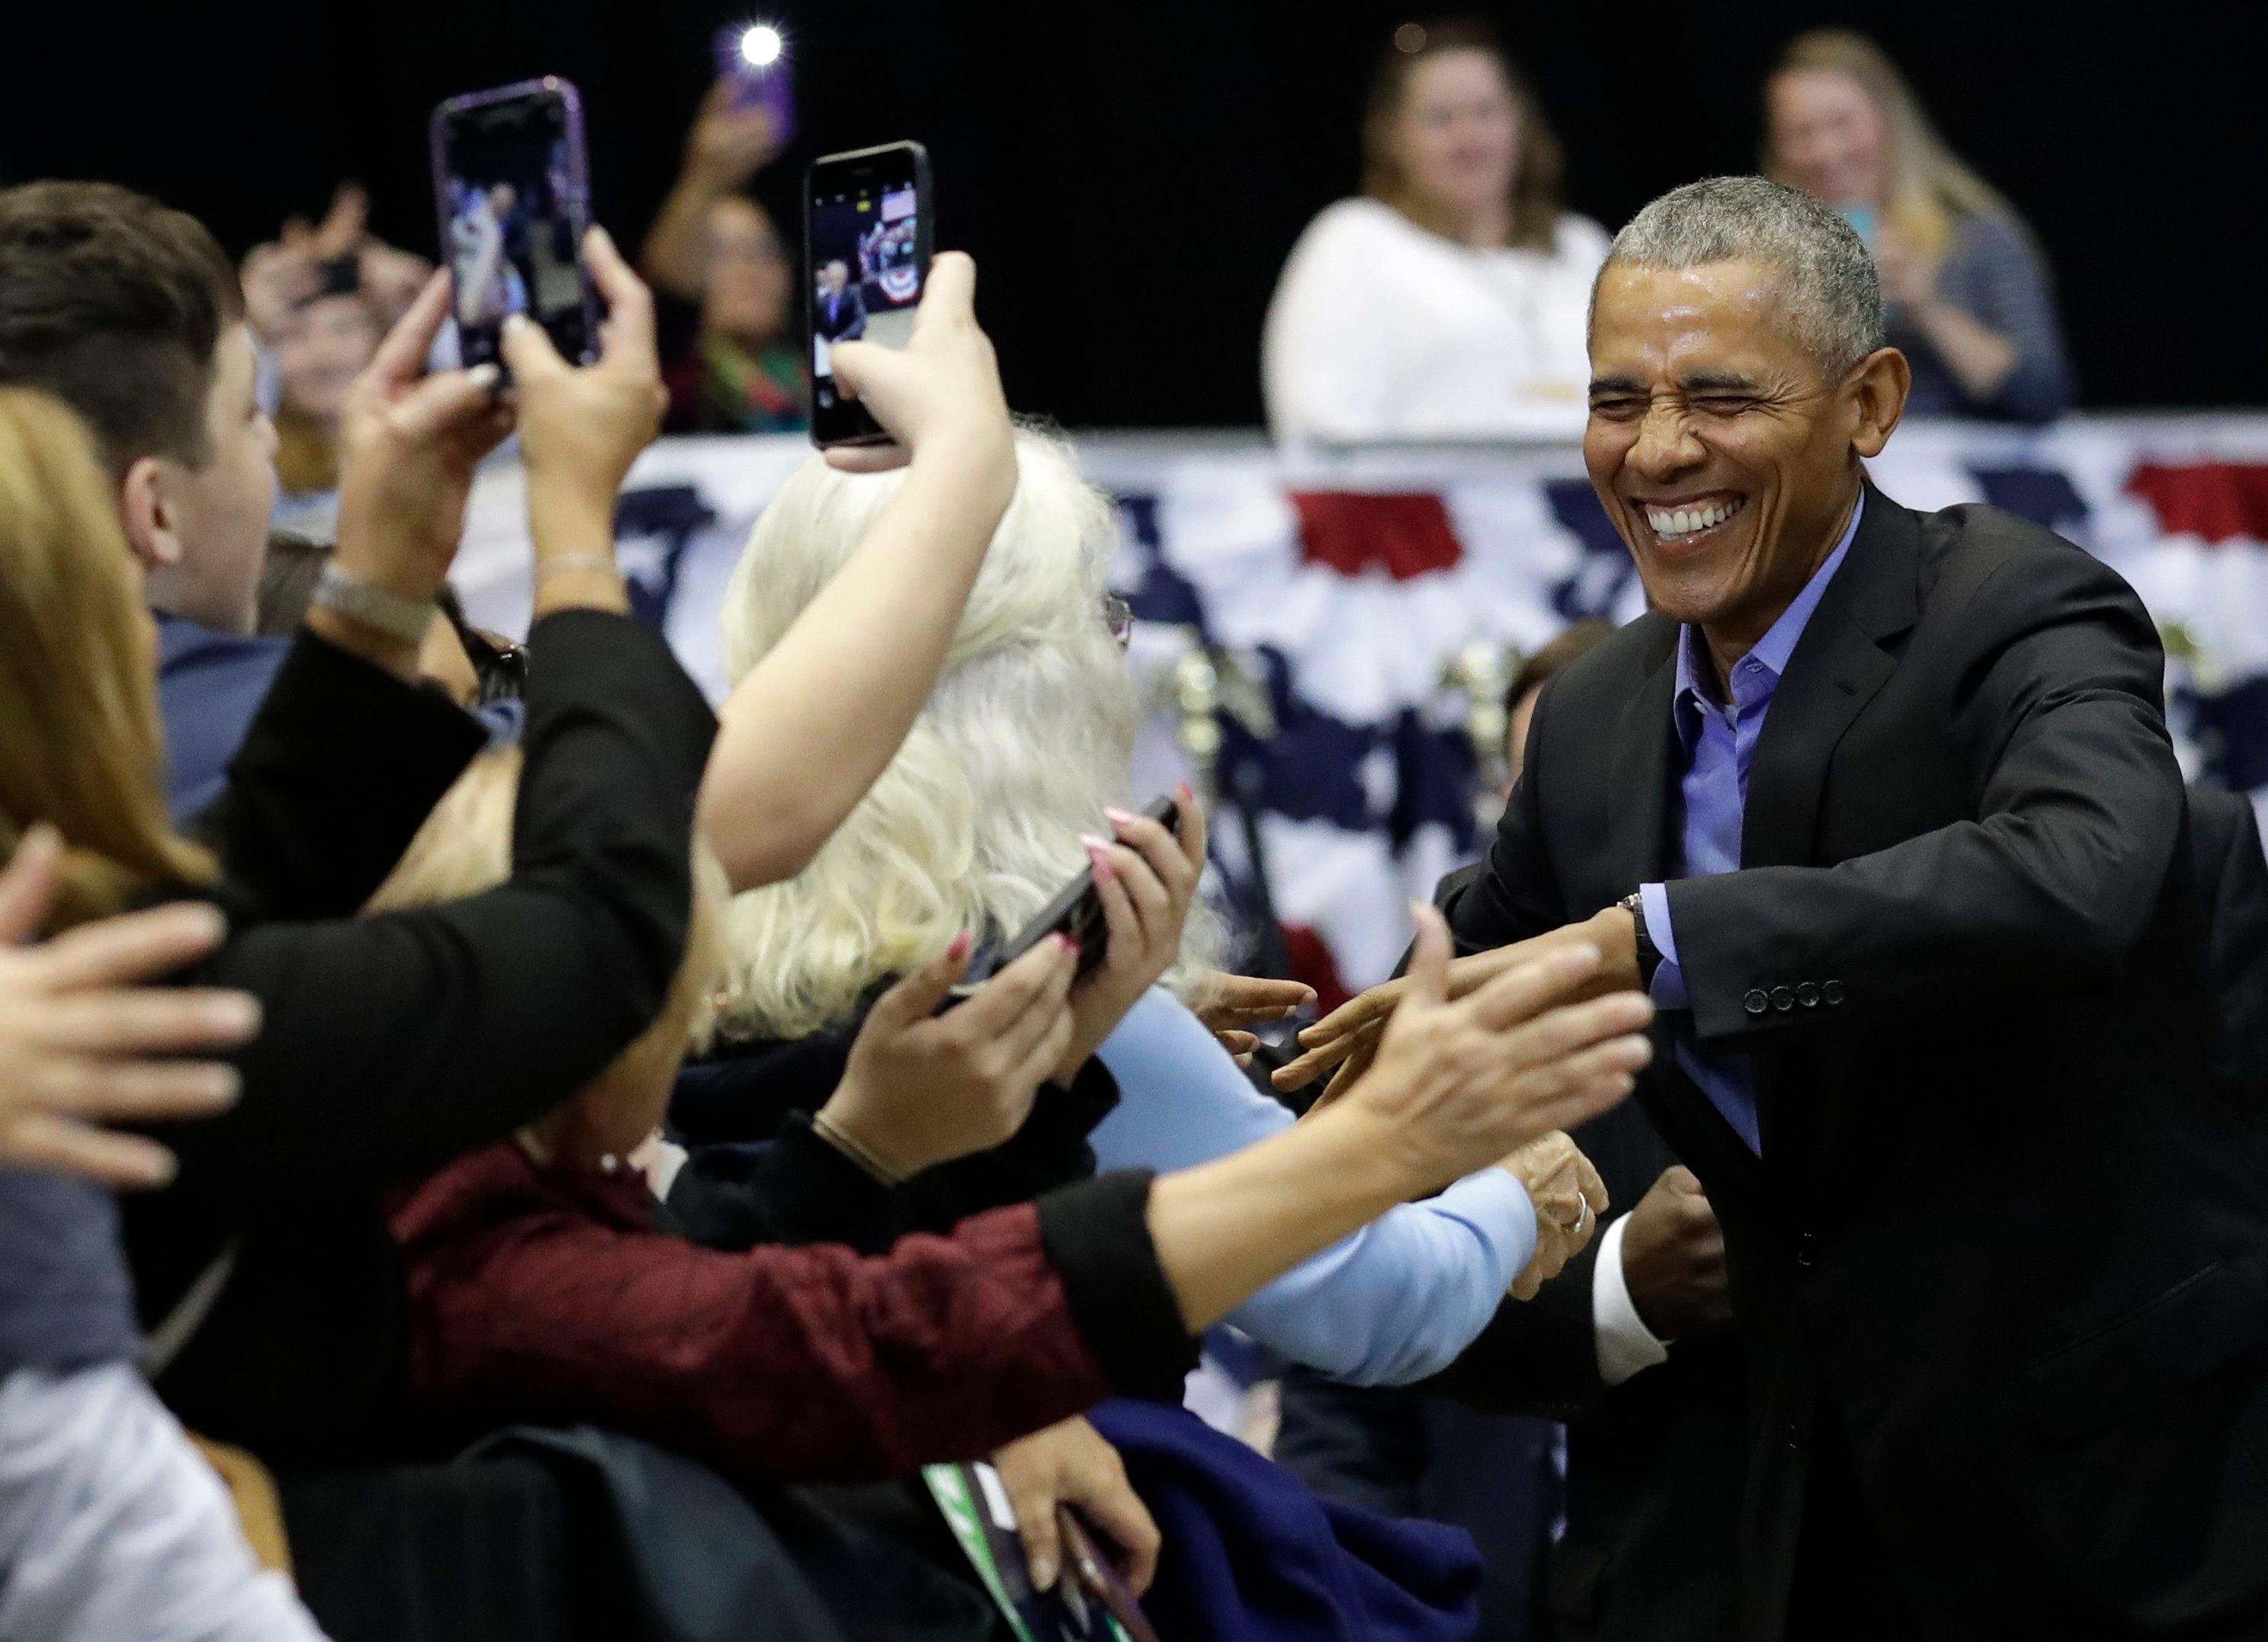 Former President Barack Obama, right, greets Democratic supporters at Genesis Convention Center, Sunday, Nov. 4, 2018, in Gary, Ind. Obama rallied Democrats on behalf of Sen. Joe Donnelly, D-Ind., who faces a stiff challenge from Republican businessman Mike Braun. (AP Photo/Nam Y. Huh)